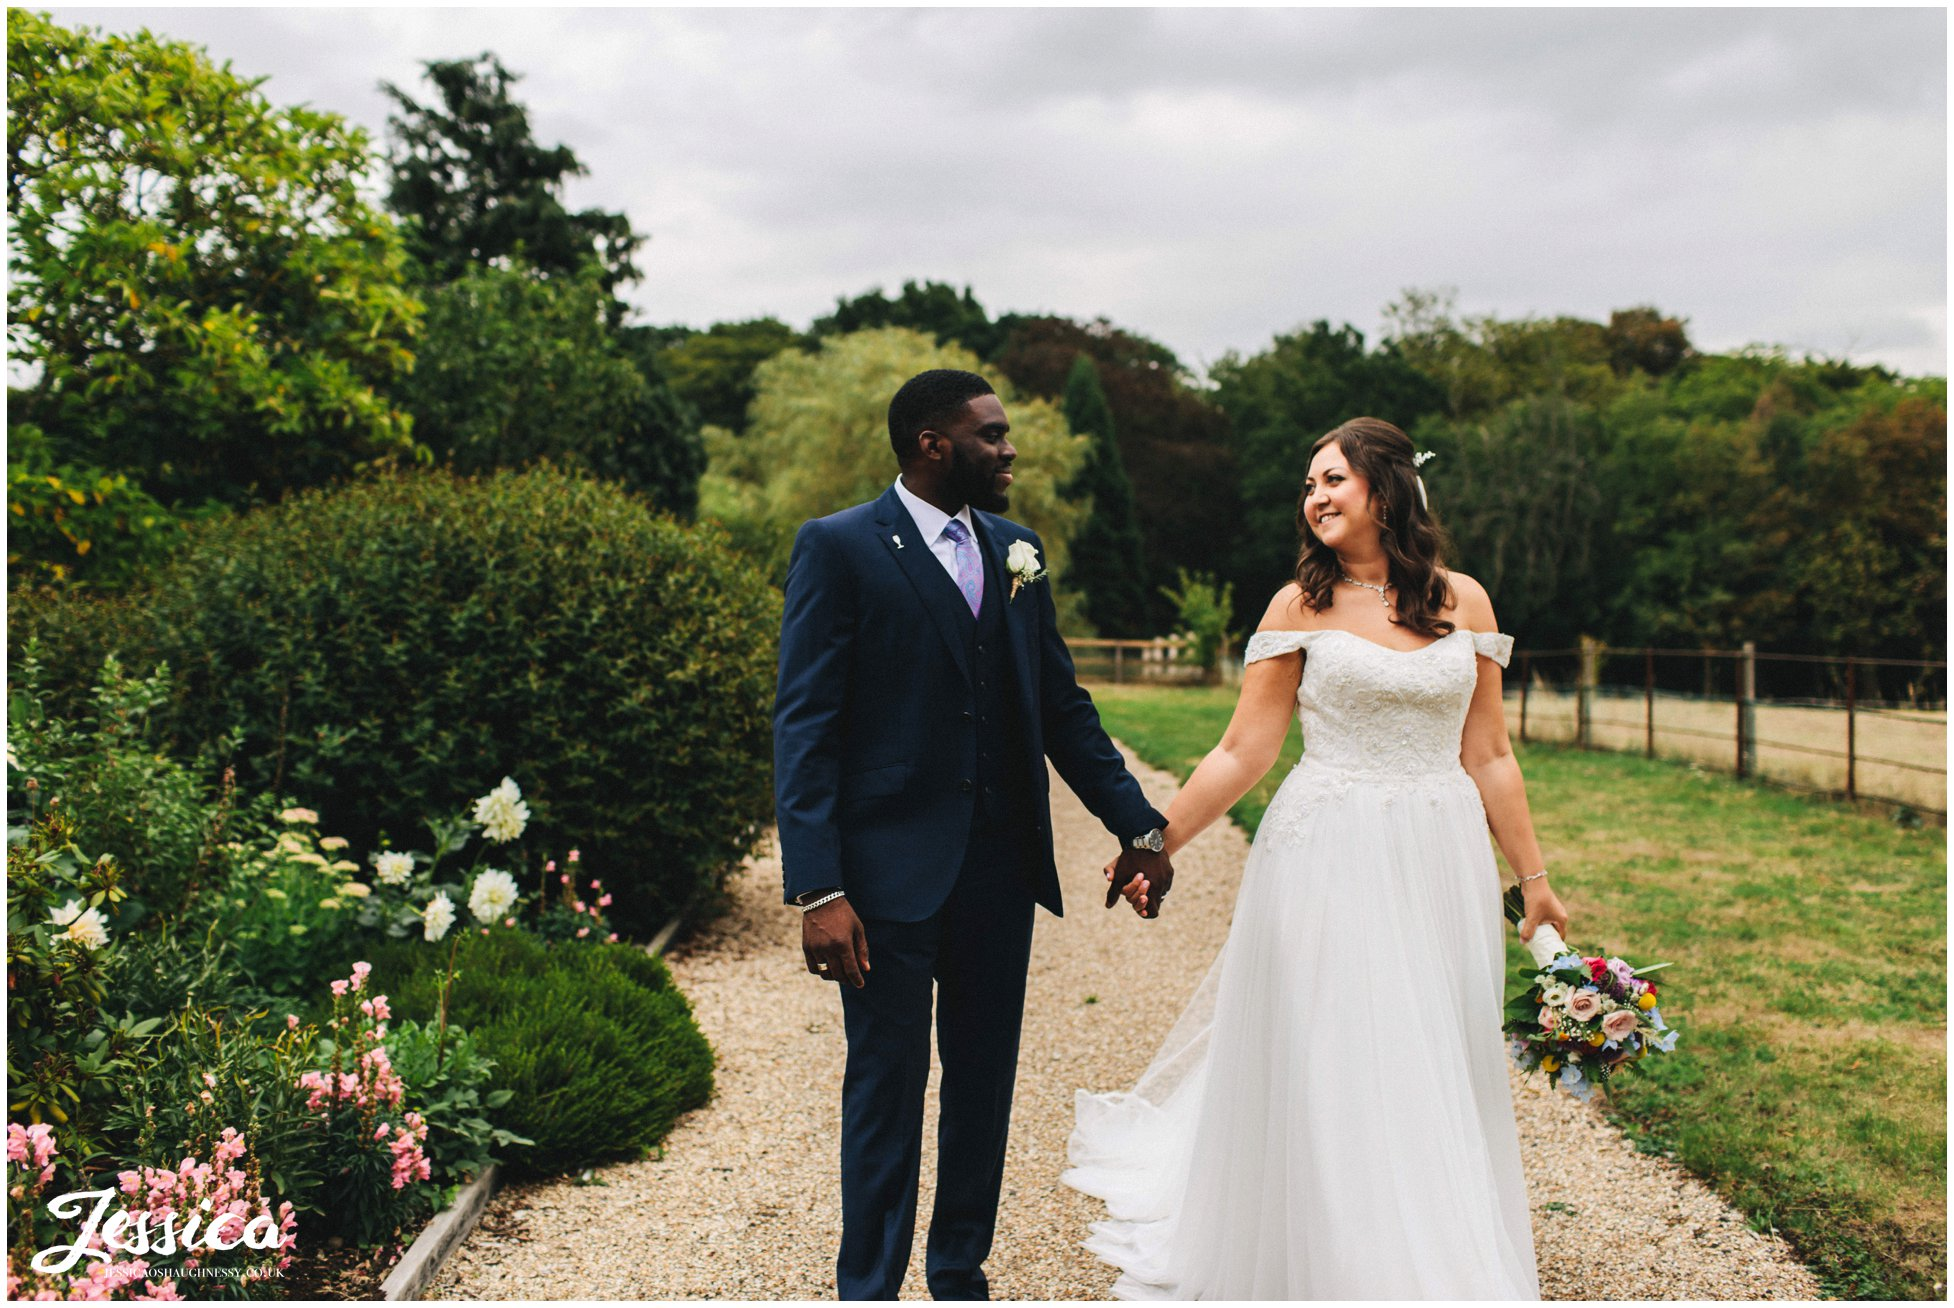 the couple walk through the gardens holding hands